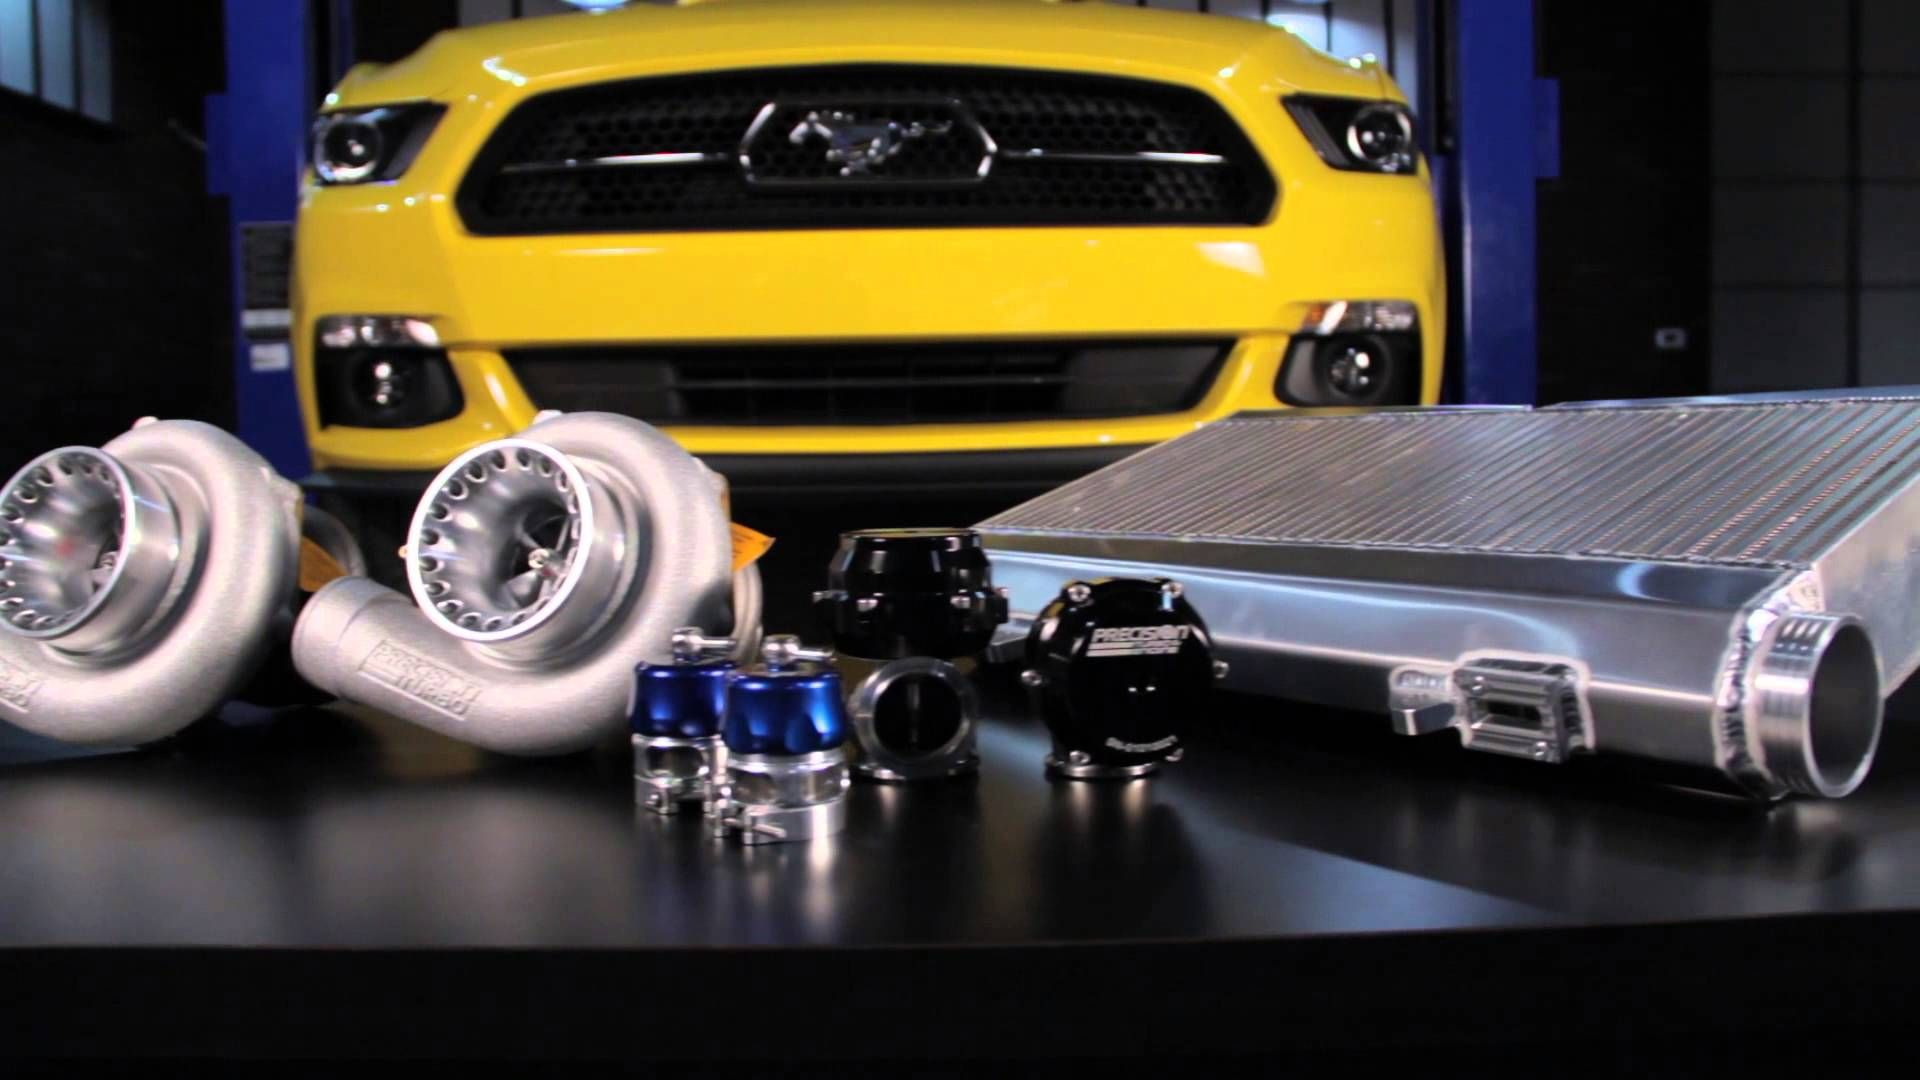 New 2015 Mustang GT Hellion Twin Turbo Kit! | CARS